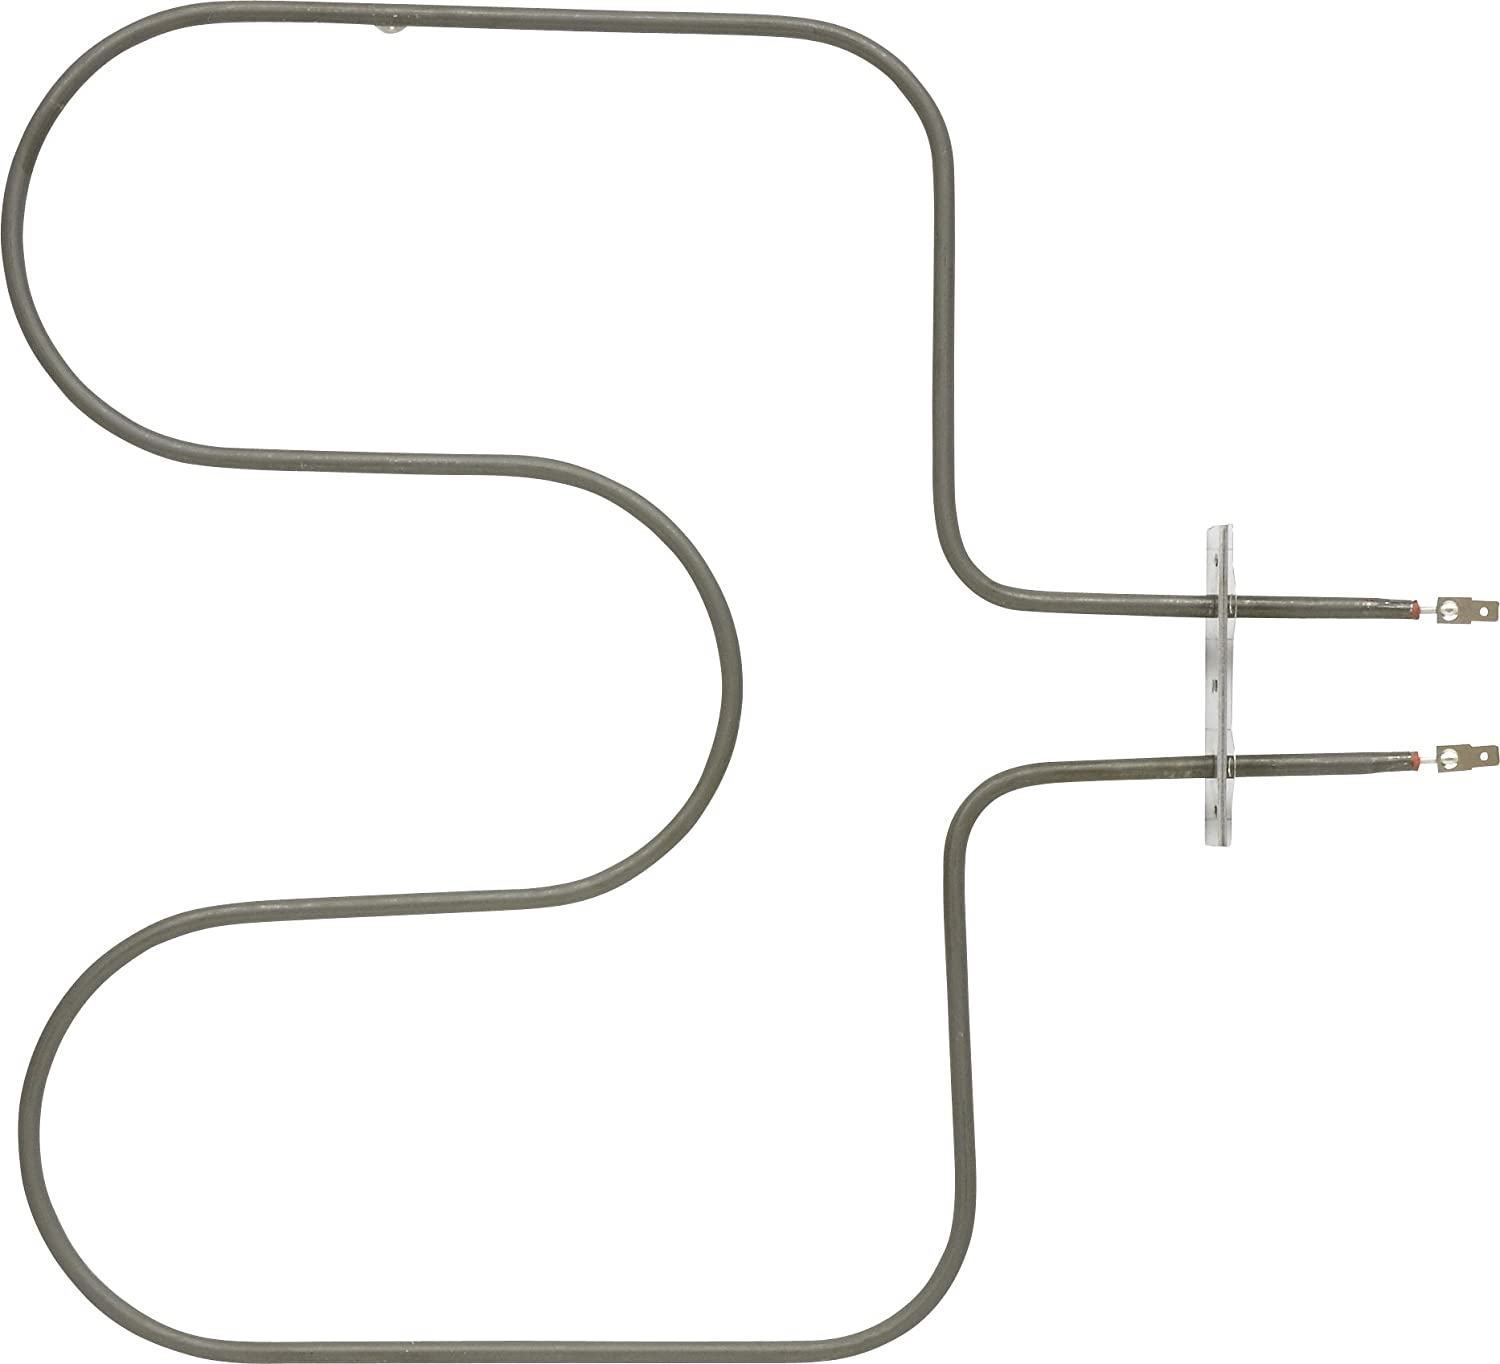 Whirlpool 77001094 Bake Element